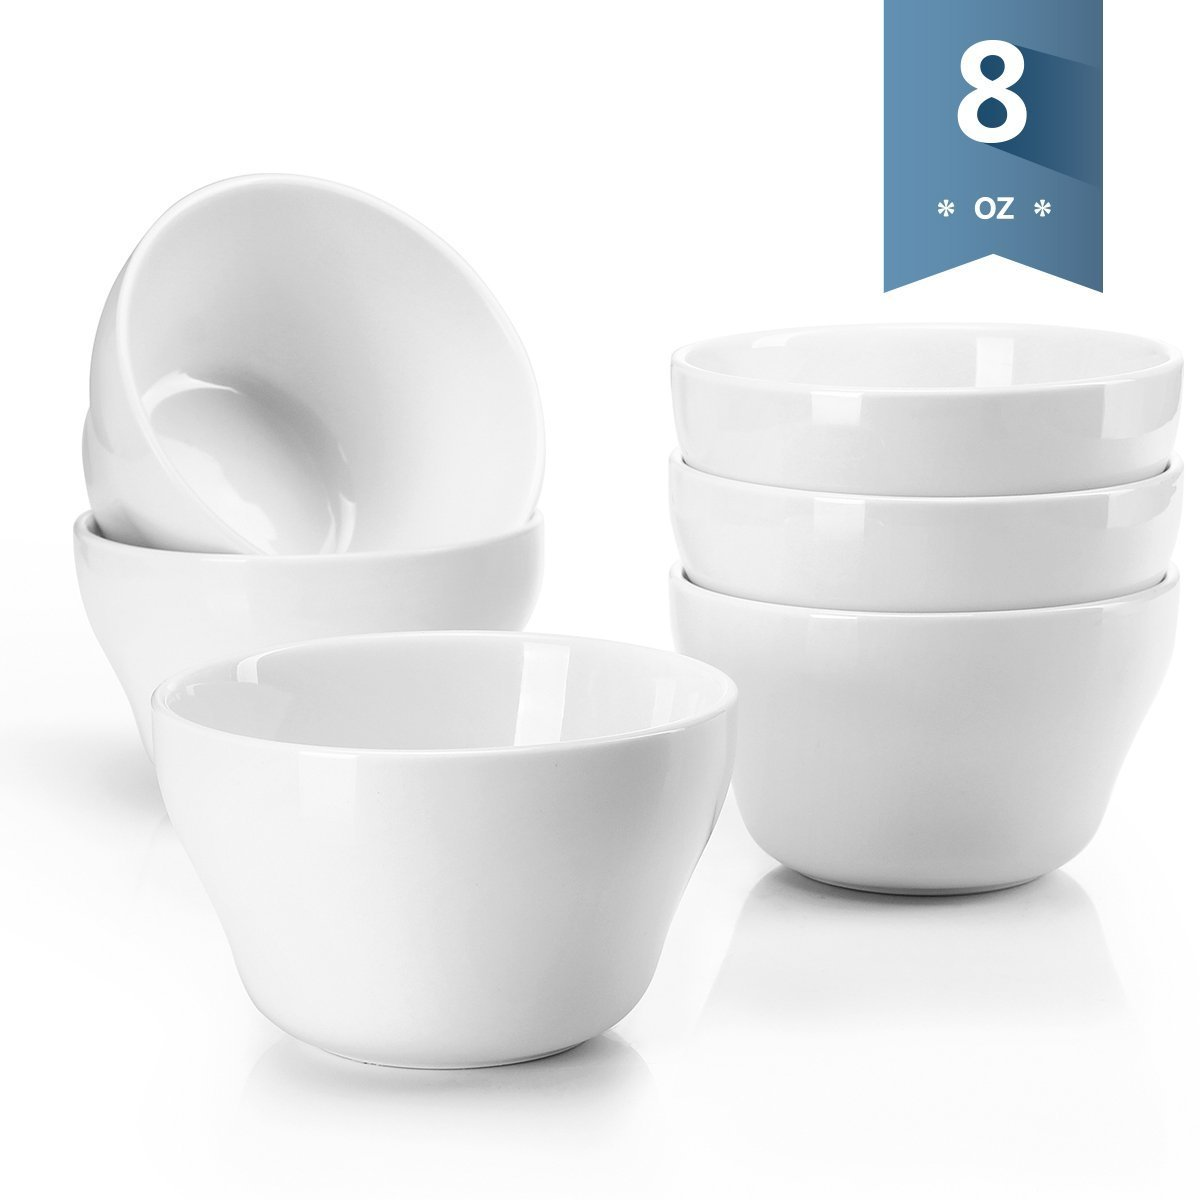 Sweese 1301 Porcelain Bouillon Cups - 8 Ounce Dessert Bowls for Cottage Cheese, Fruit, Crackers, Salsa, Little Size Dishes - Set of 6, White